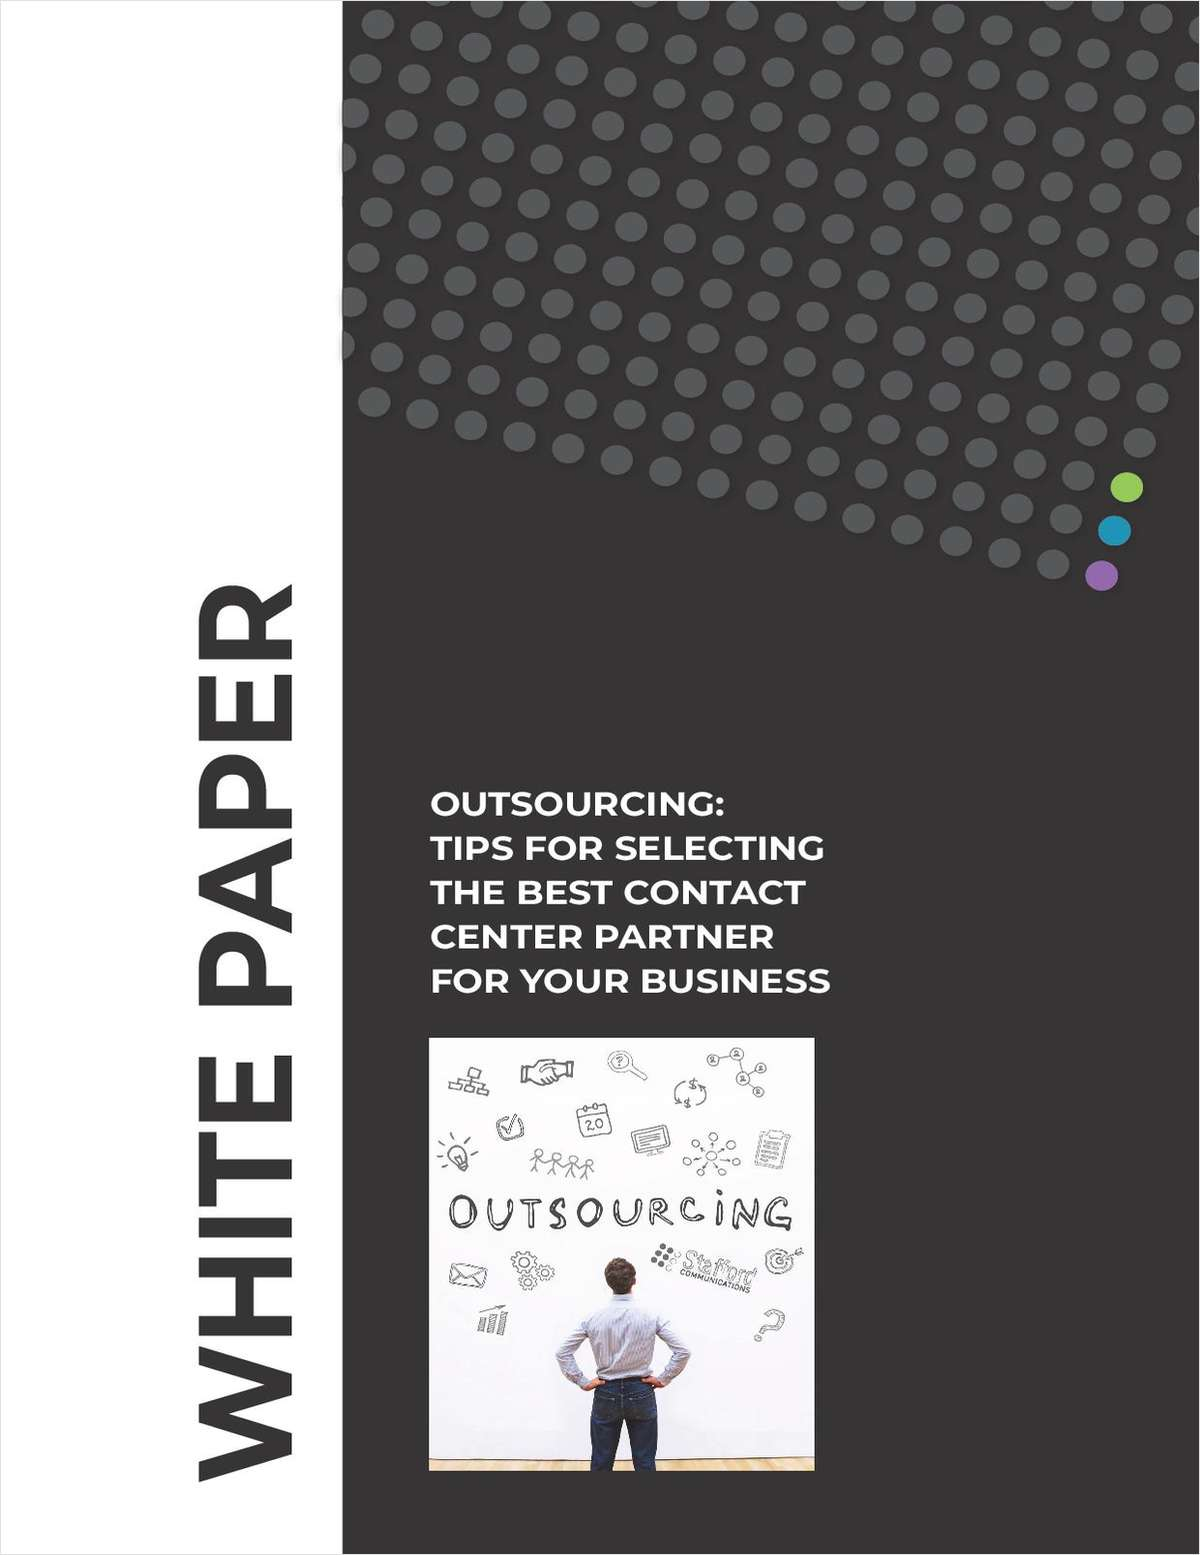 Outsourcing: Tips For Selecting The Best Contact Center Partner For Your Business